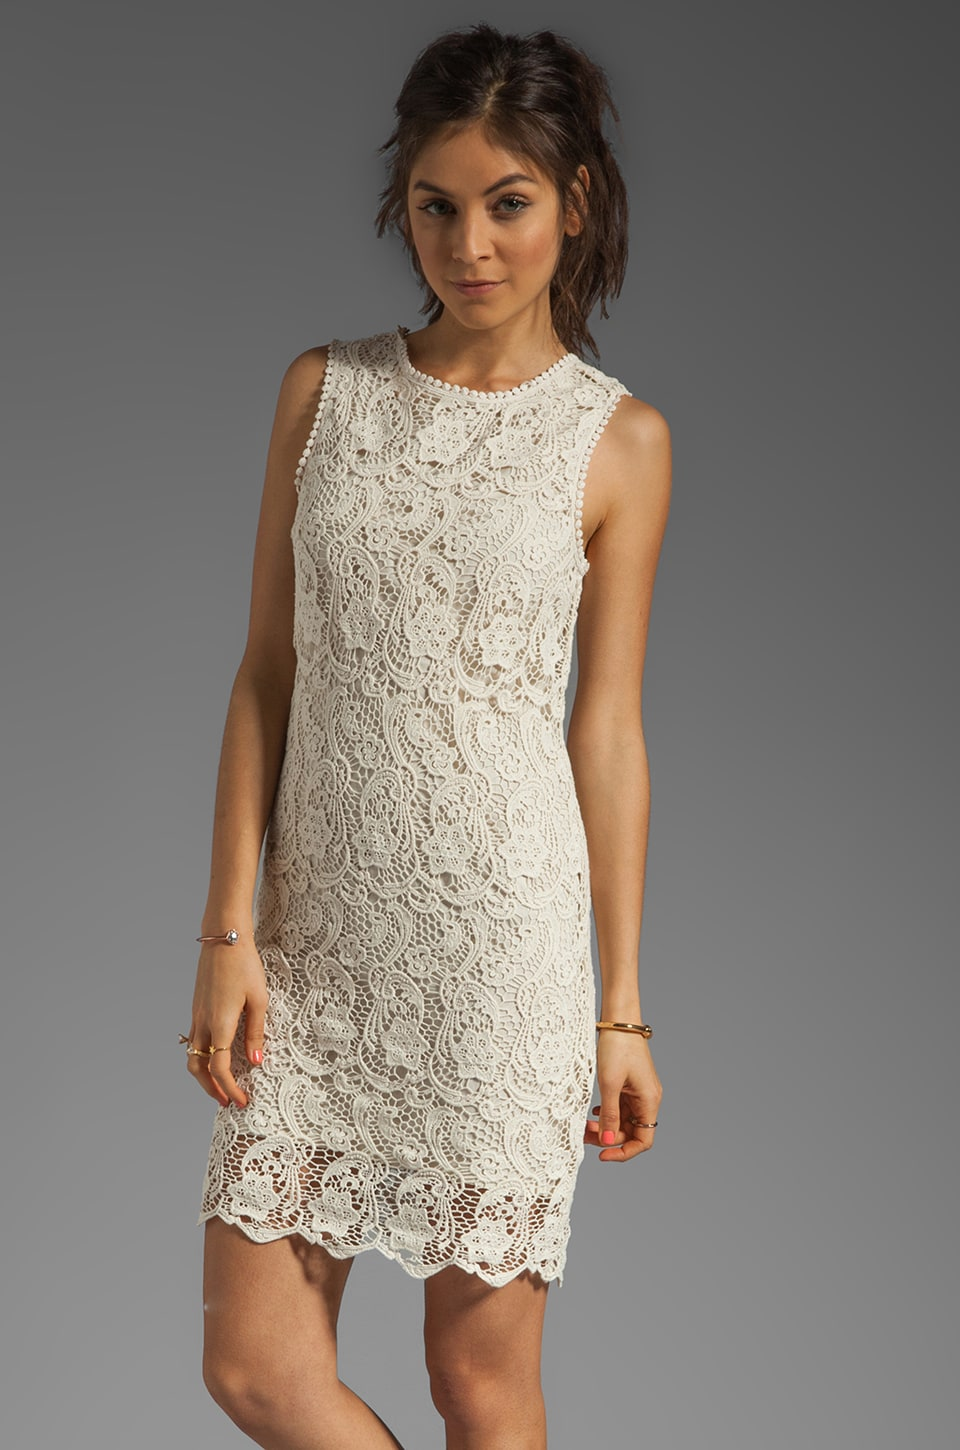 Joie Vionne Crochet Lace Dress in Off White